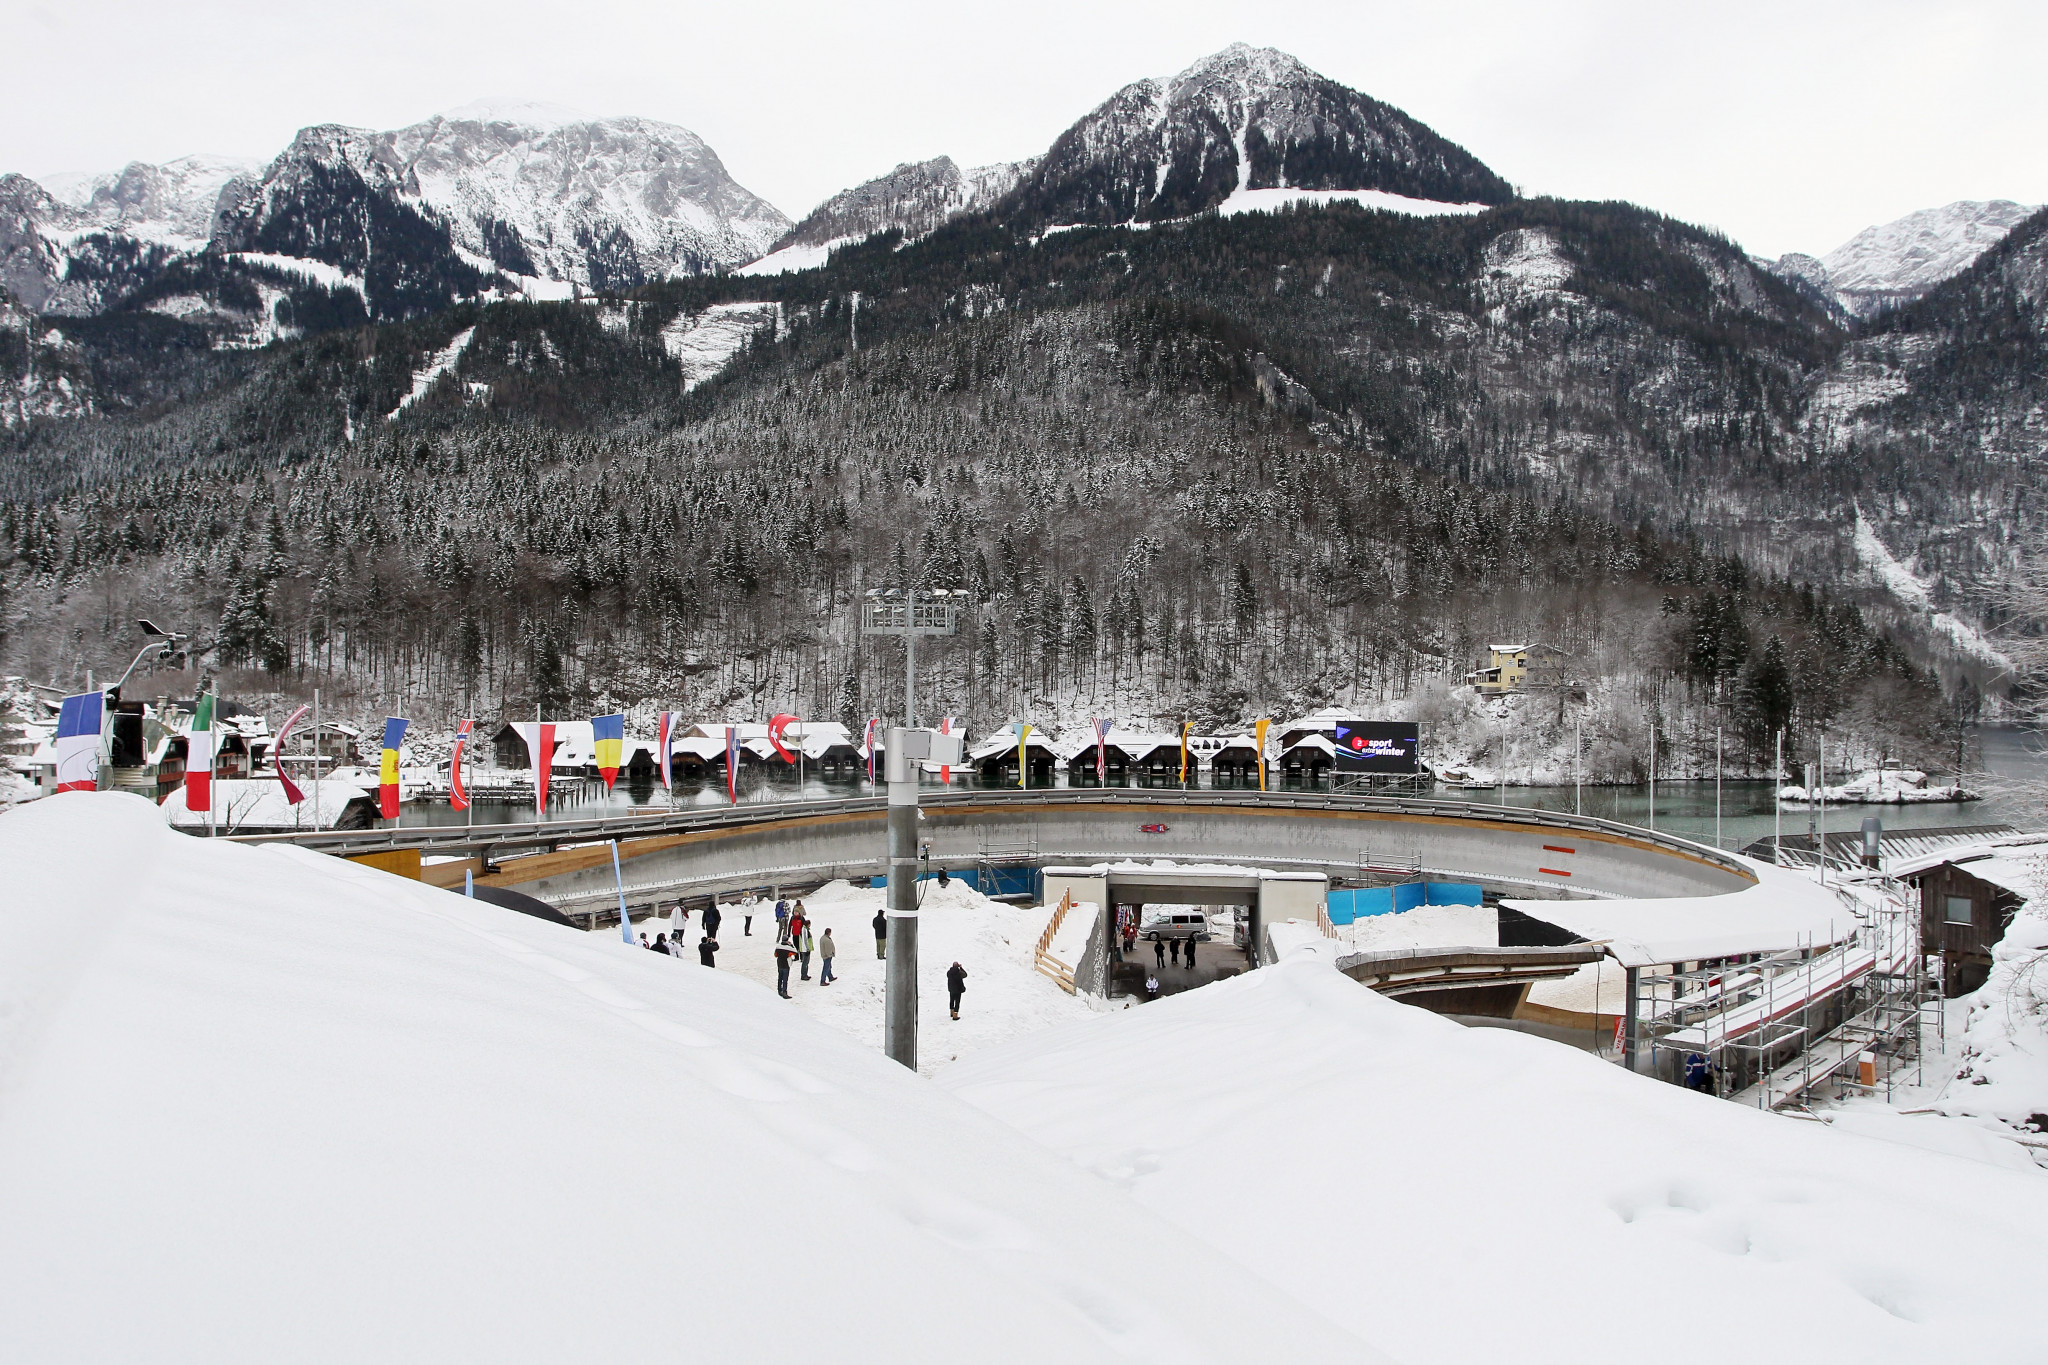 Königssee track celebrates 50th anniversary by hosting FIL Luge World Cup event